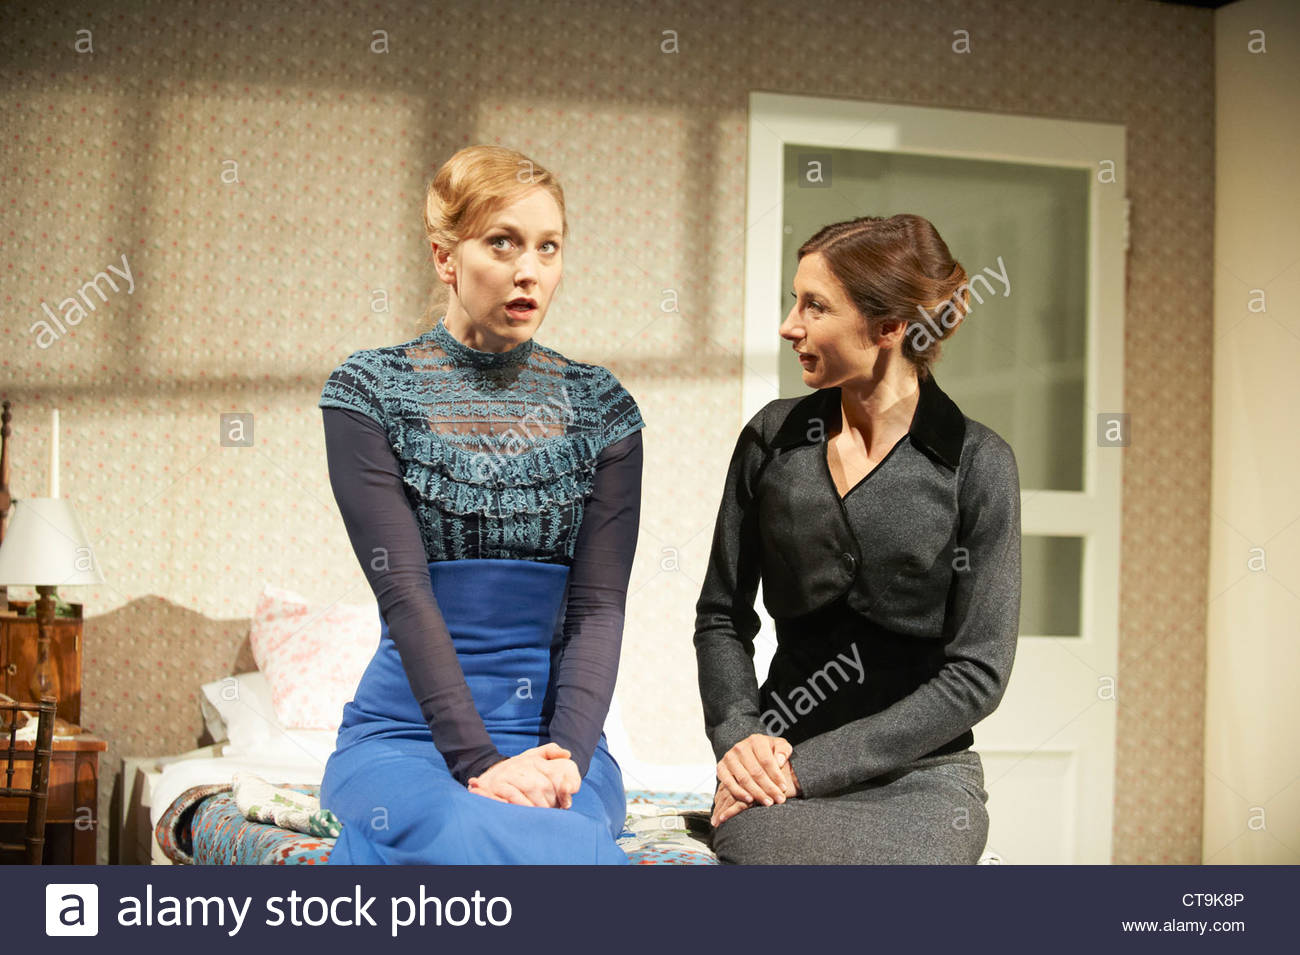 A Dolls House By Henrik Ibsen Translated Simon Stephens Directed Carrie Cracknell